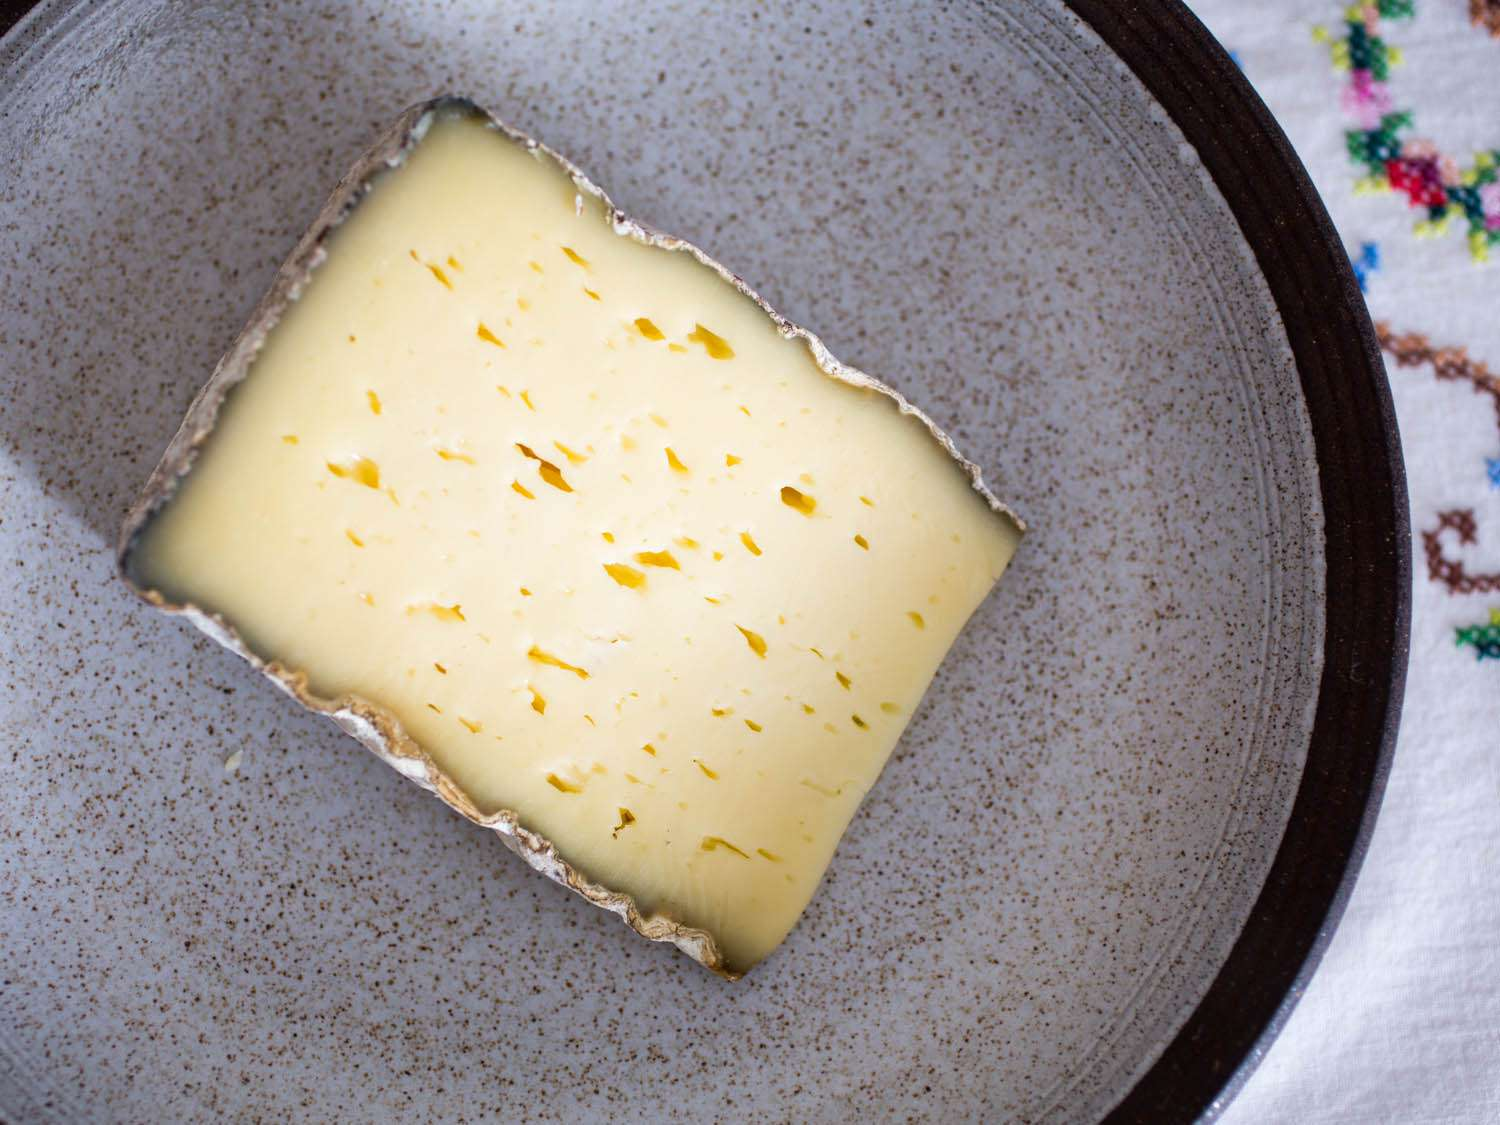 A wedge of Weinkase Lagrein cheese on a speckled gray plate.